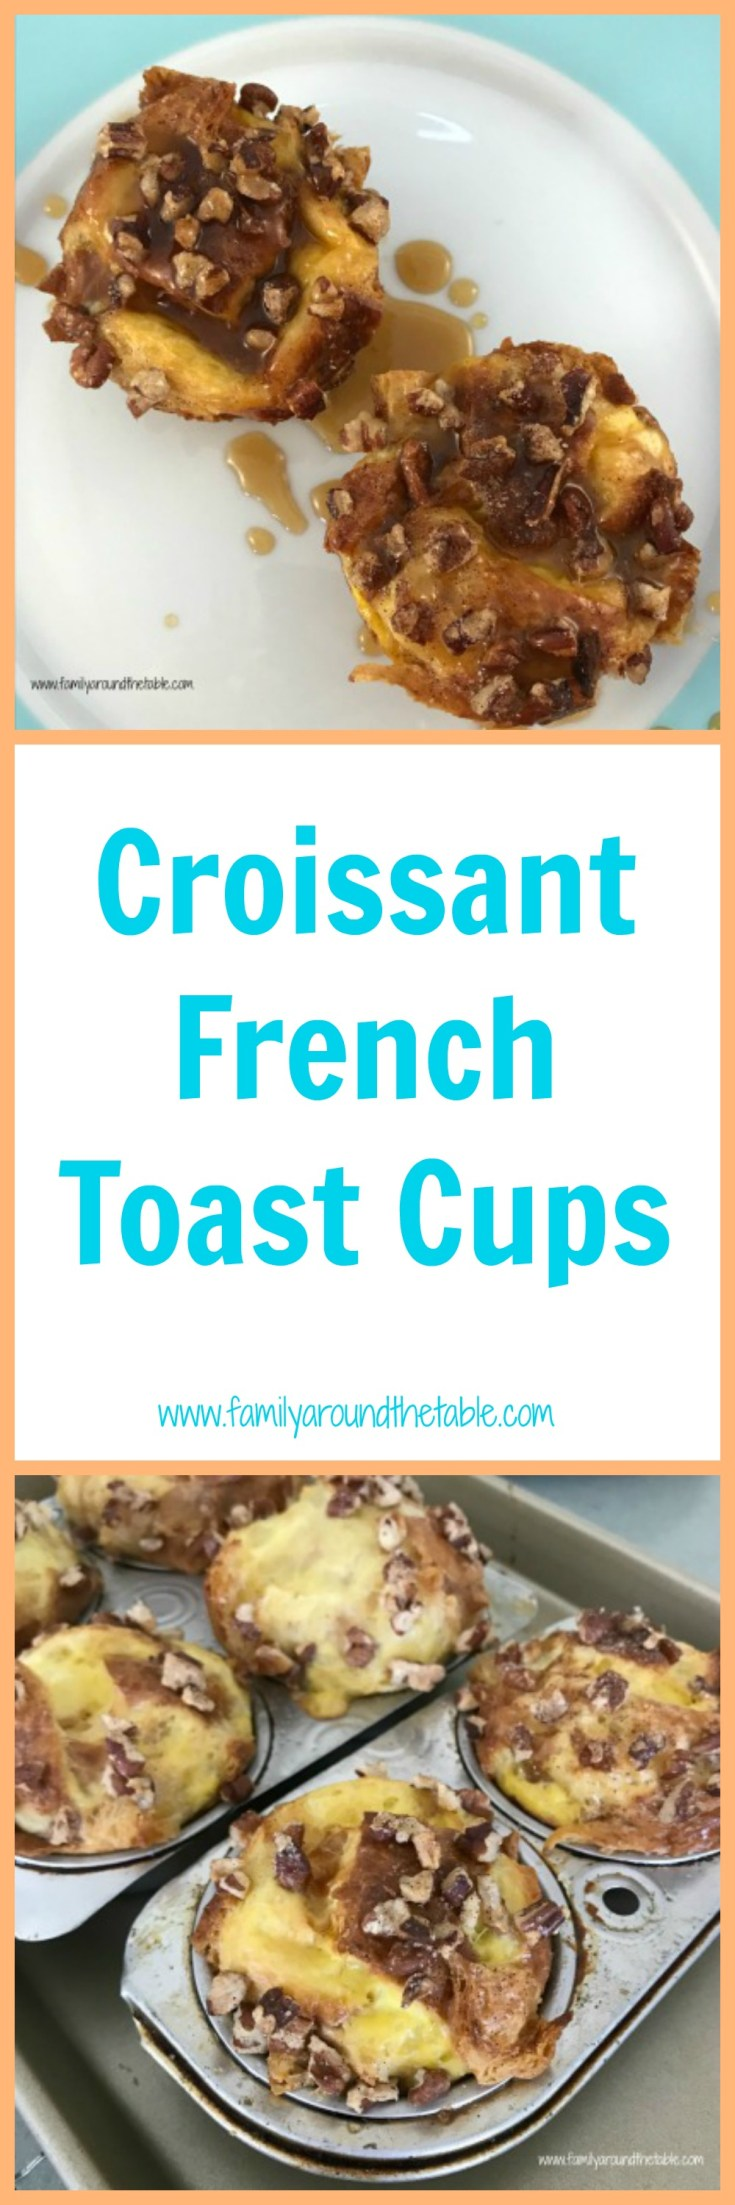 Croissant French toast cups come together quickly and are a delicious twist on a classic breakfast.